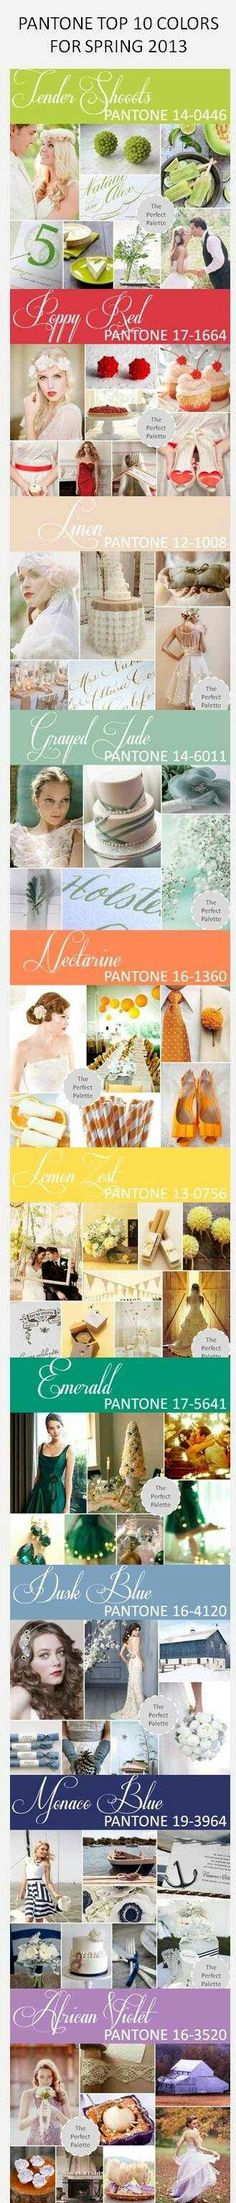 Top 10 colours for spring weddings 2013